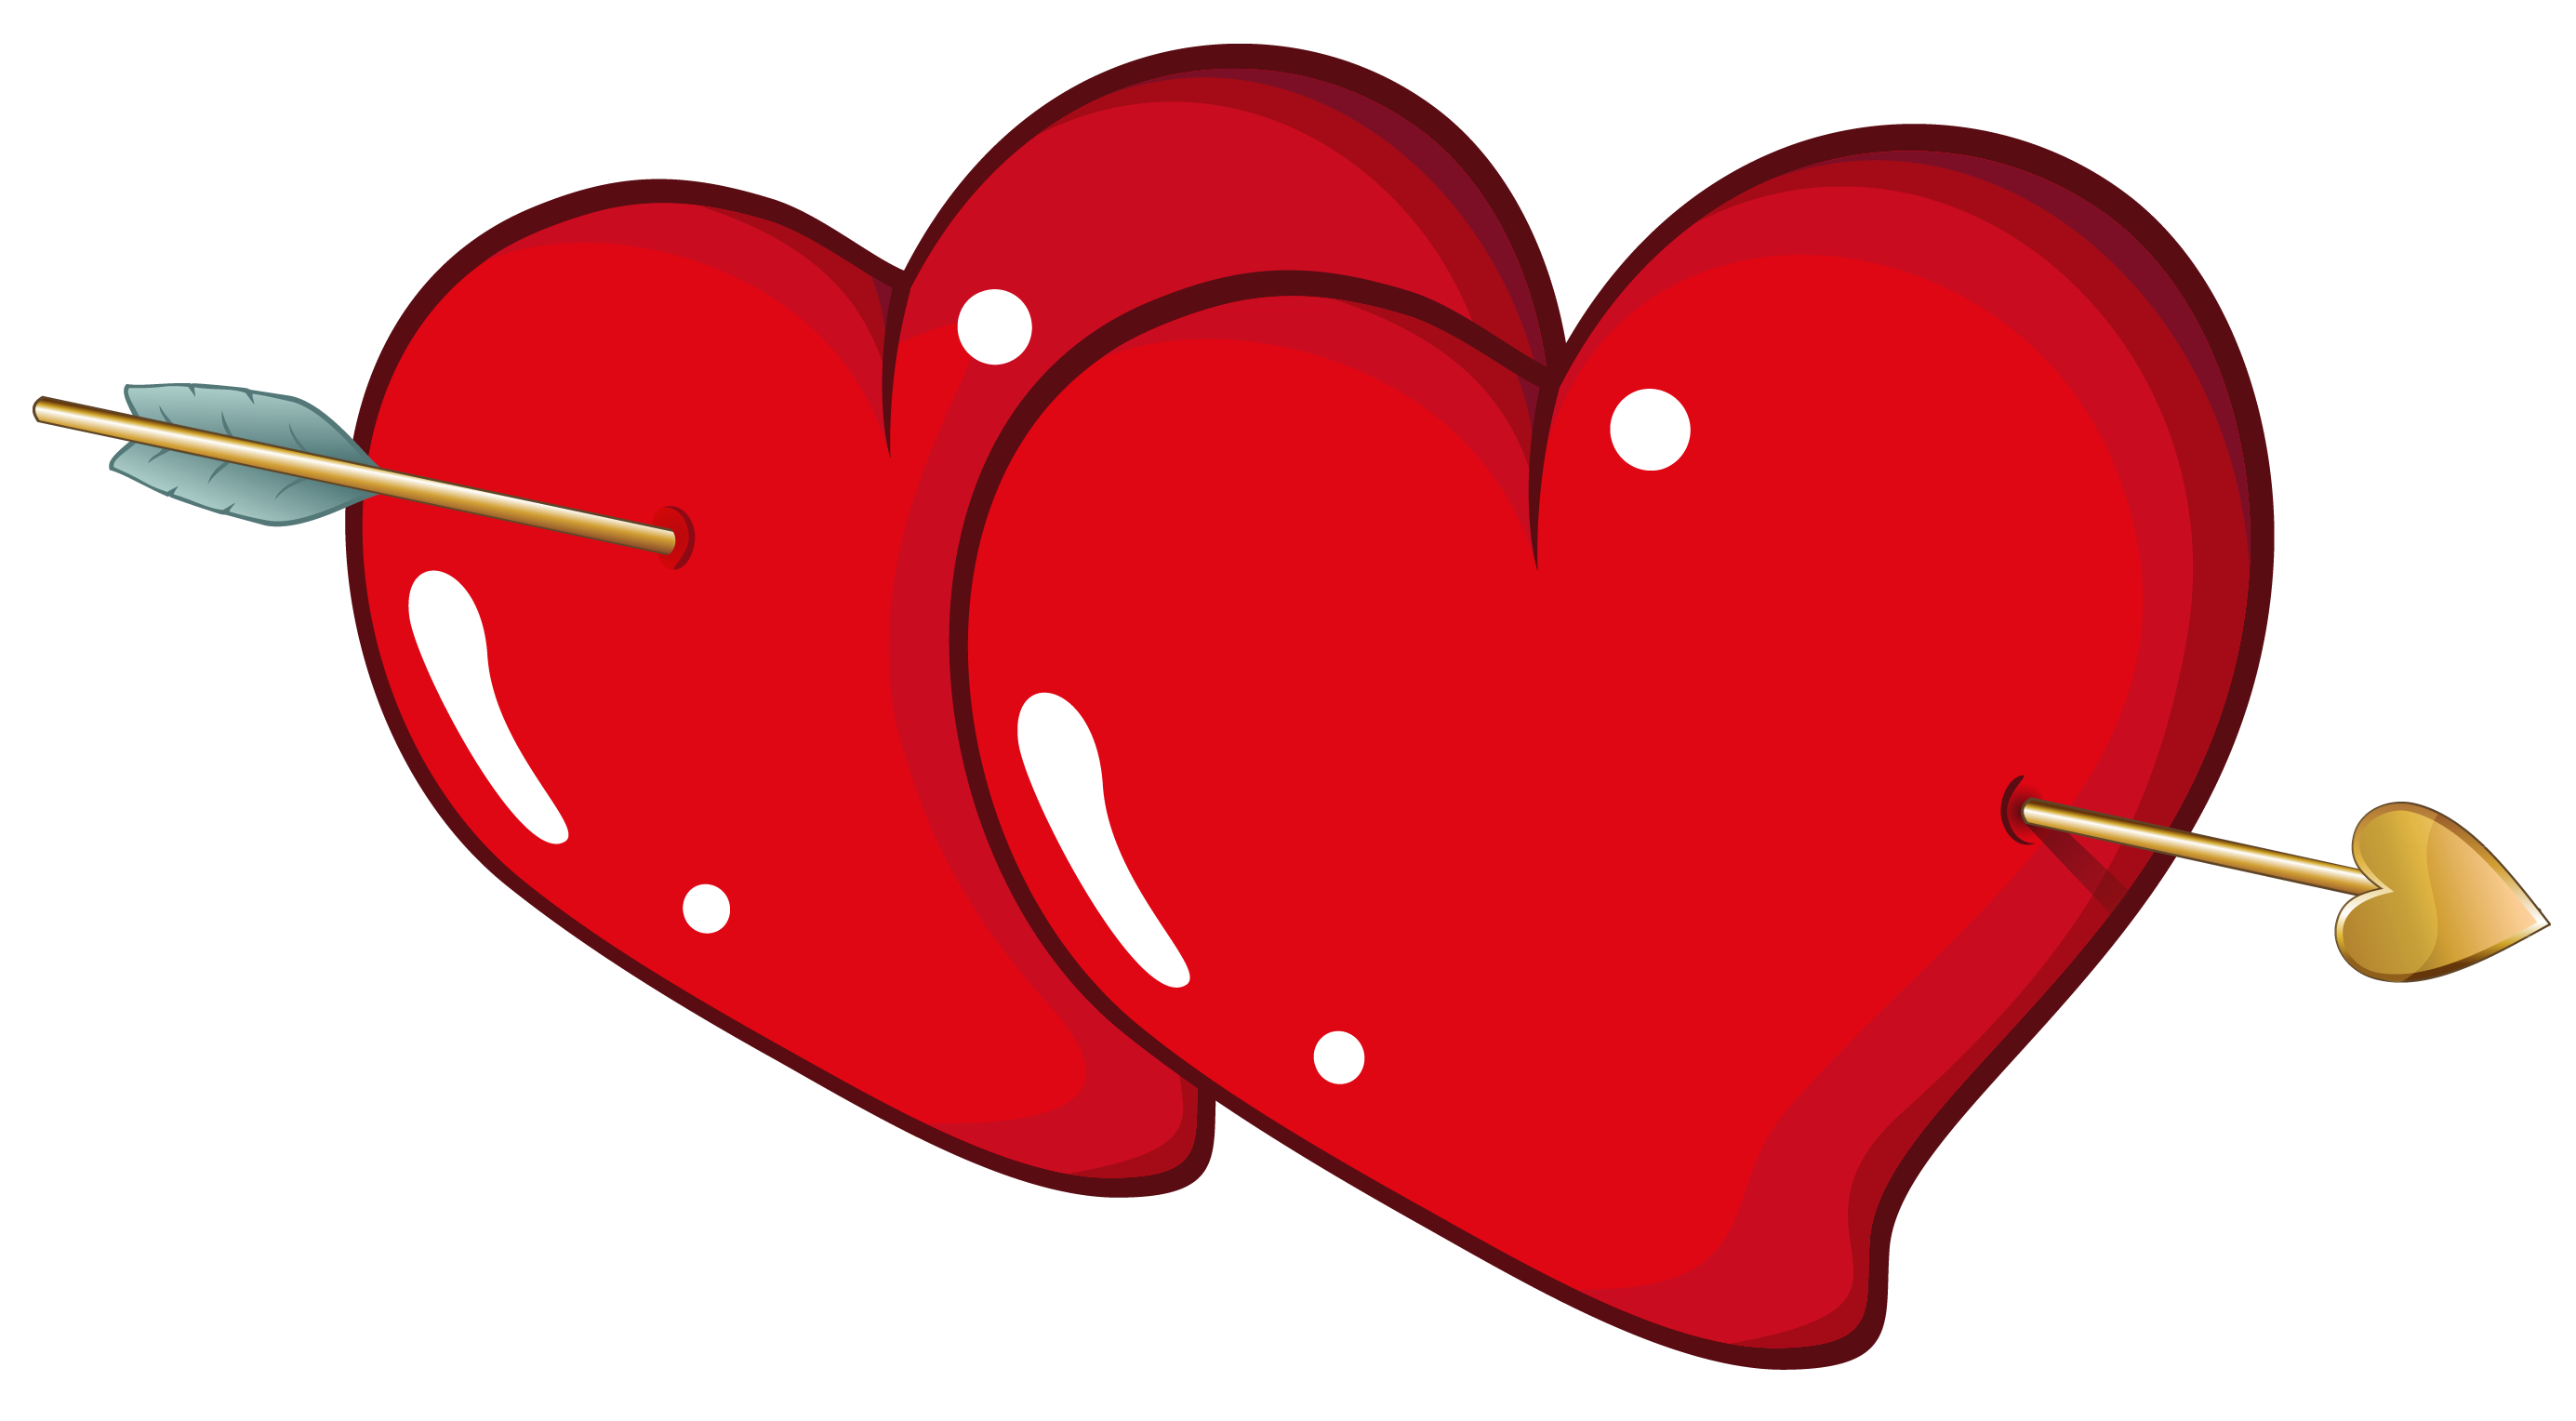 Valentine Hearts With Arrow Png Clipart Picture Gallery Yopriceville High Quality Images And Transparent P Heart With Arrow Valentine Heart Heart Pictures